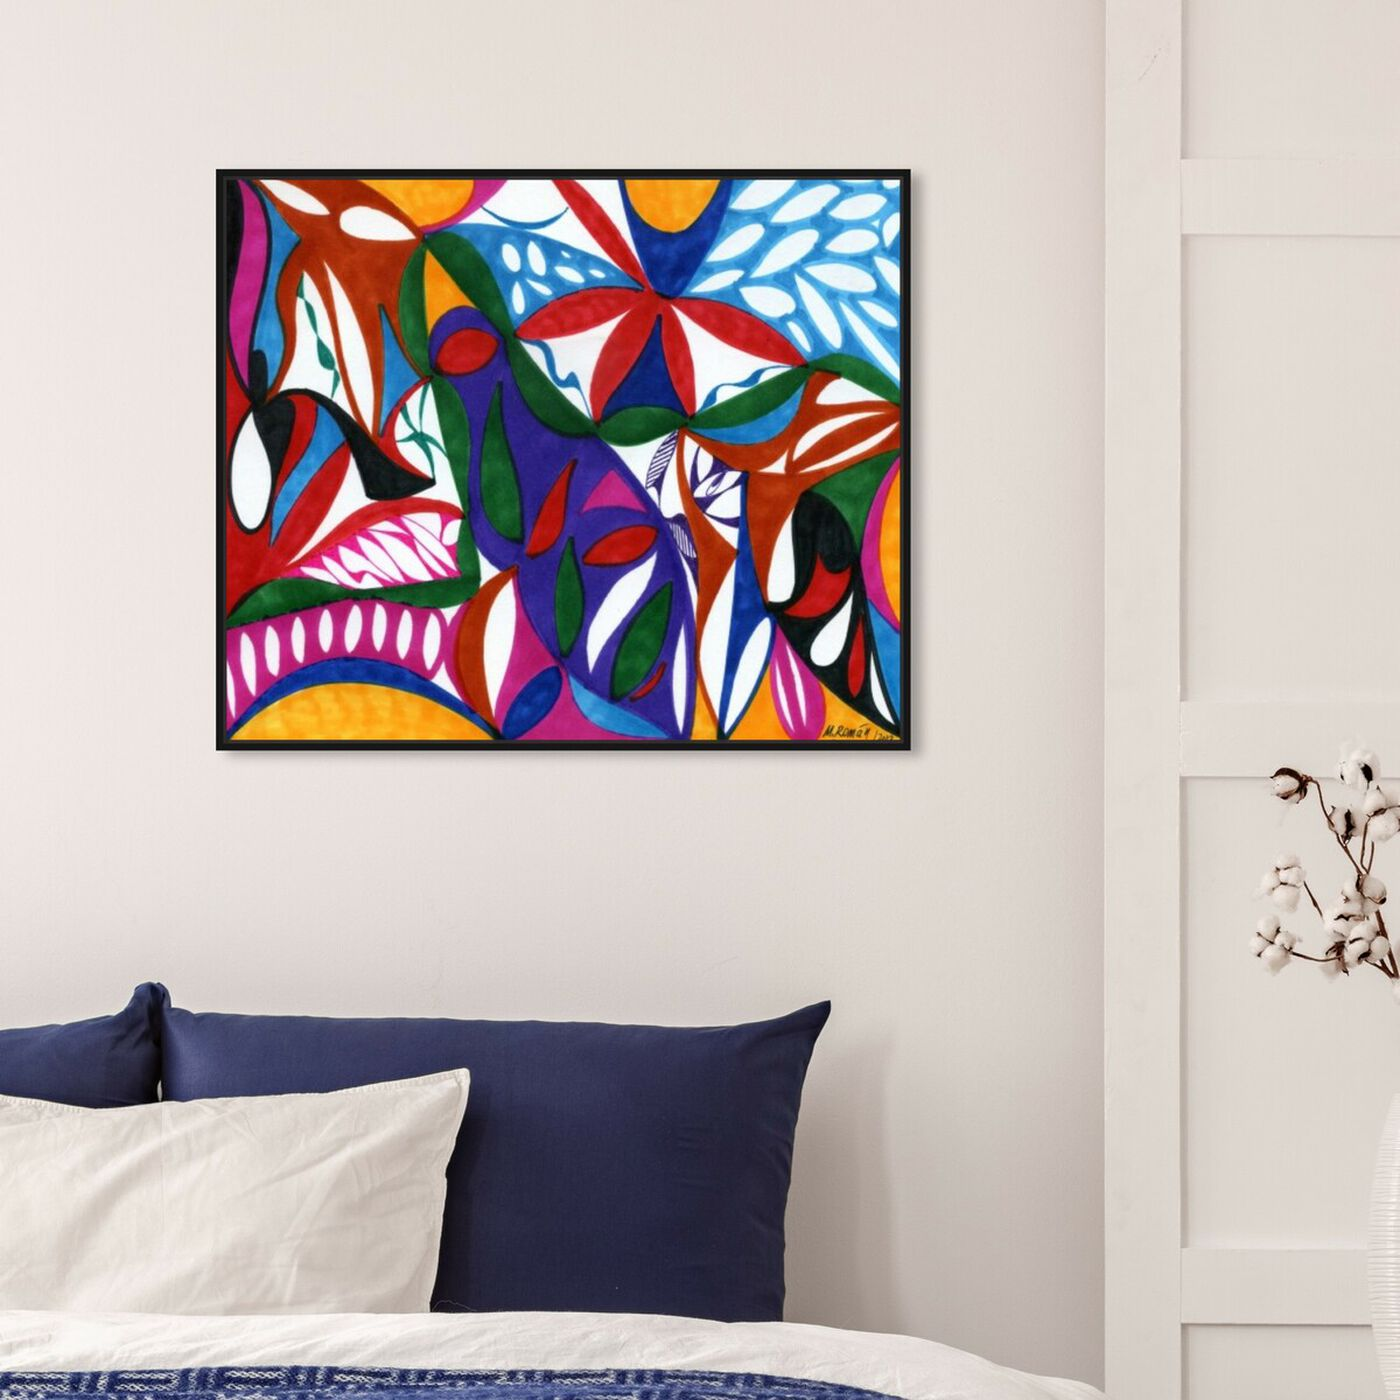 Hanging view of Rhapsodic featuring abstract and geometric art.